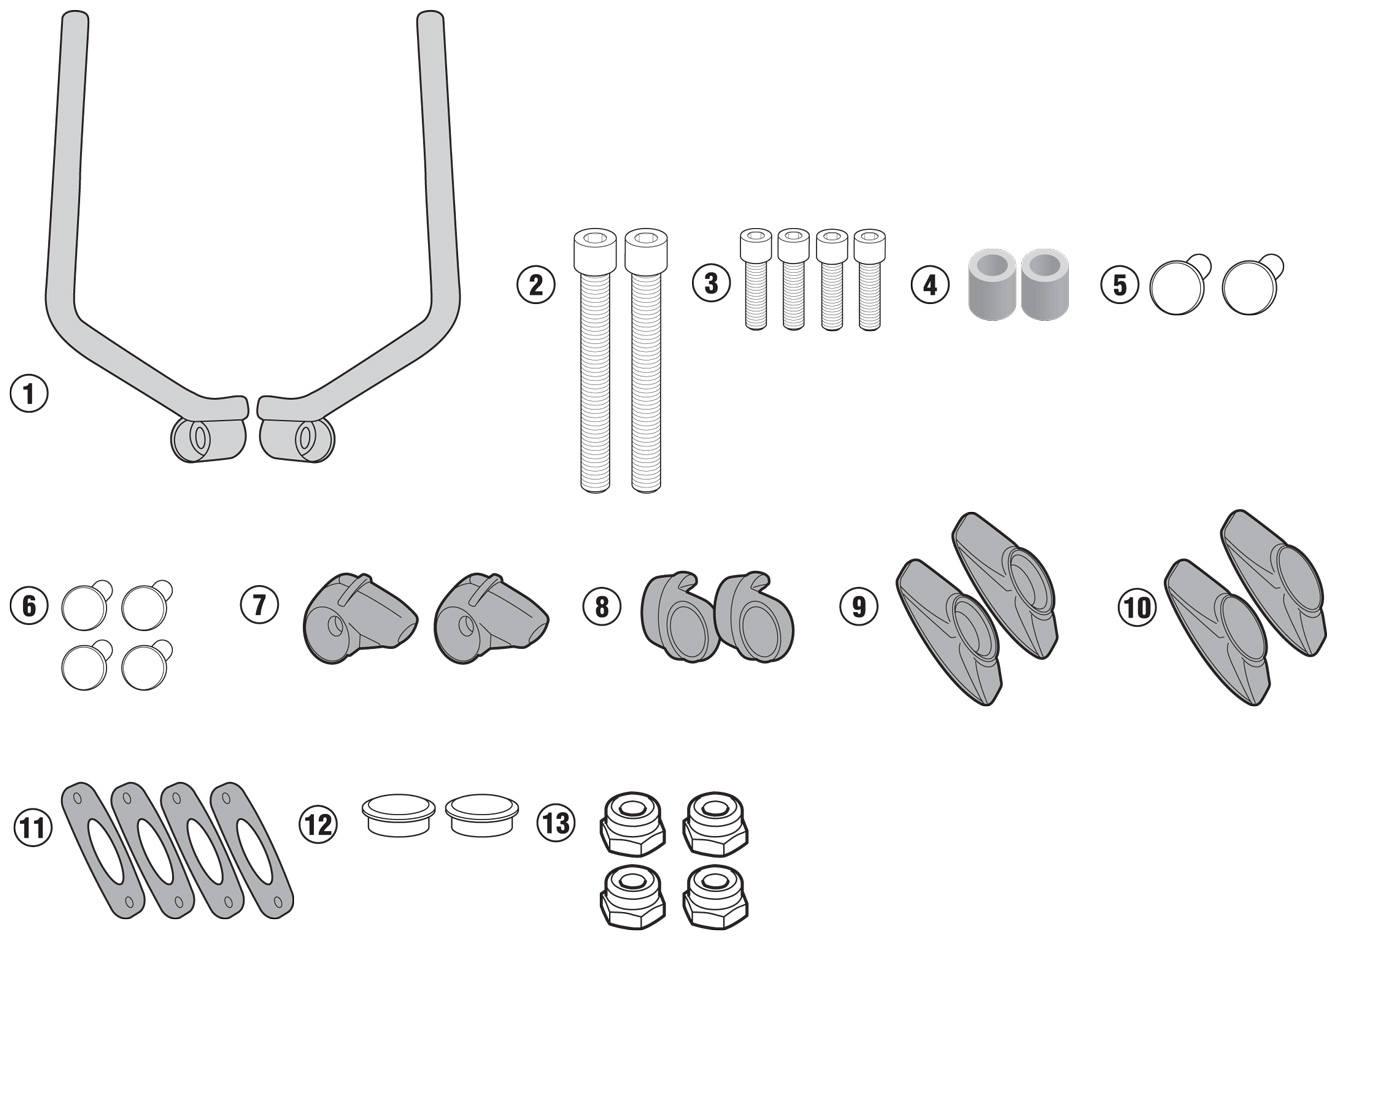 Givi Install Kit A7407a Ducati 250 Scrambler Wiring Diagram Mounting For Windscreen 7407a To Be Mounted On